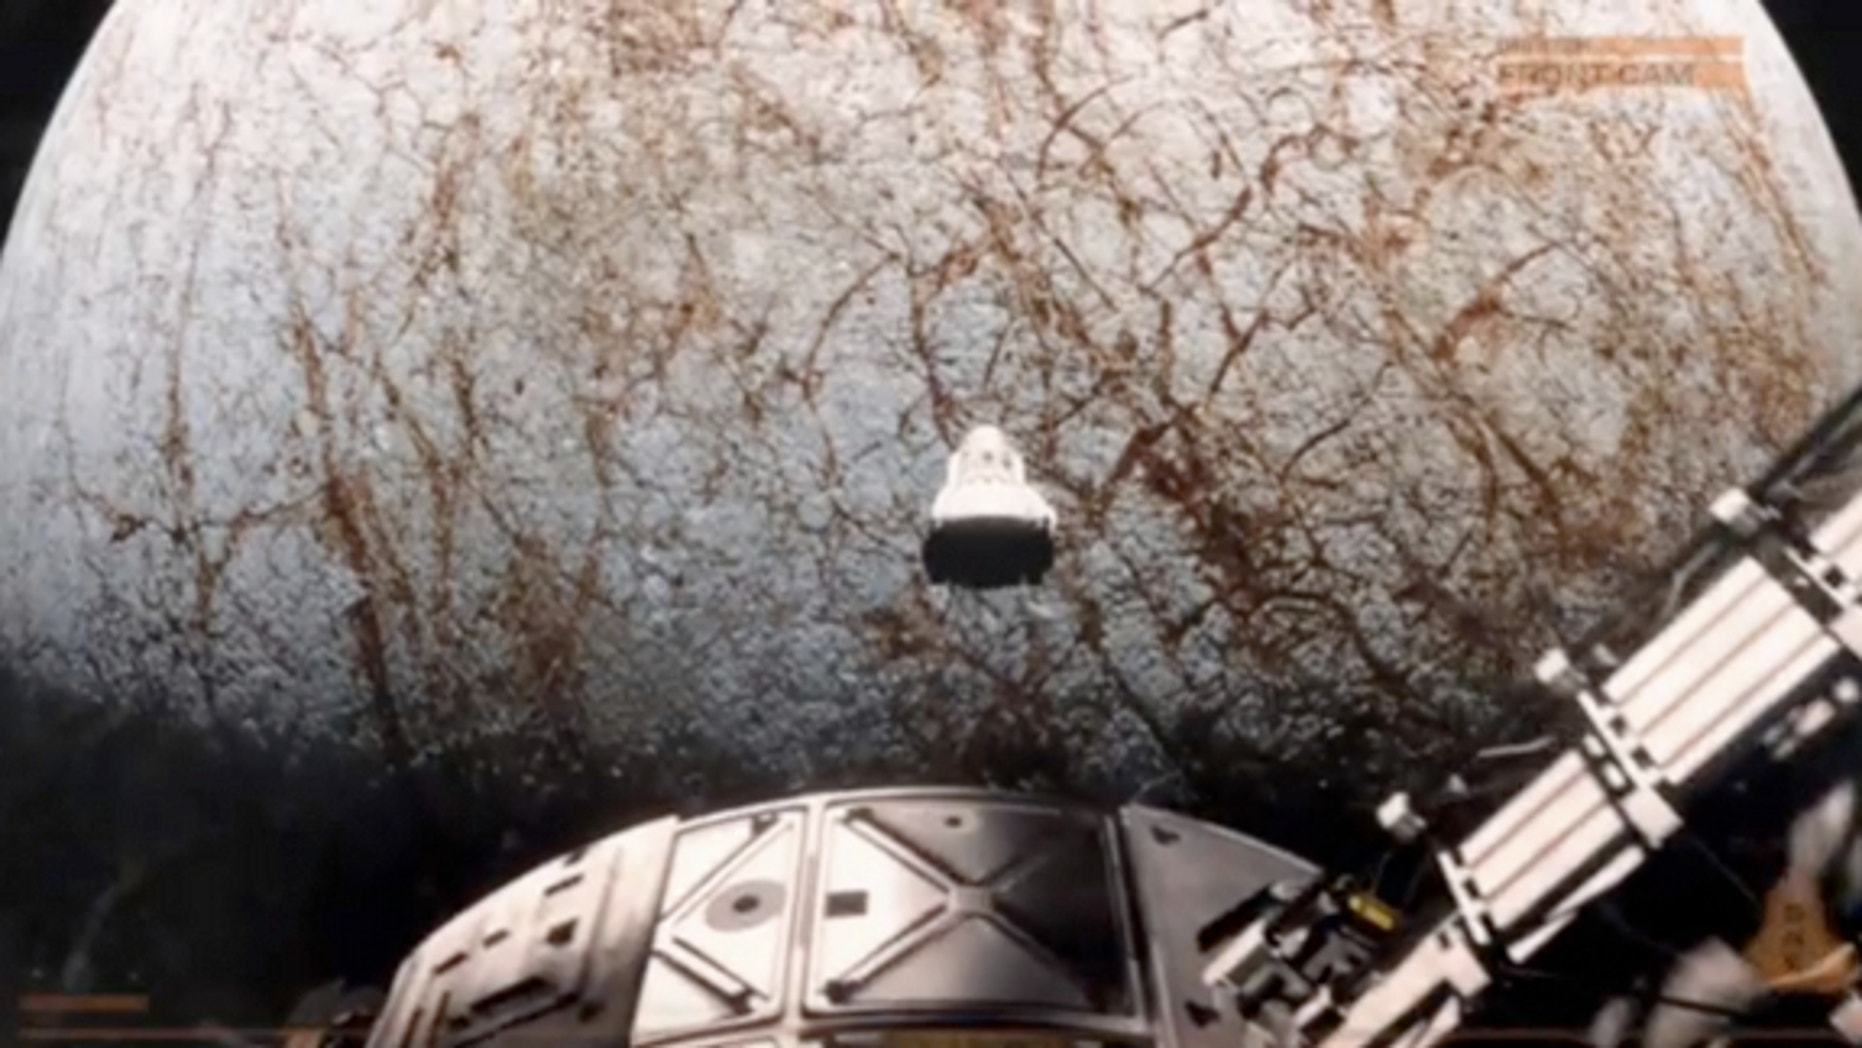 """A screenshot from the teaser for """"The Europa Report,"""" a sci-fi film that depicts a team of astronauts exploring Jupiter's icy moon Europa for alien life."""